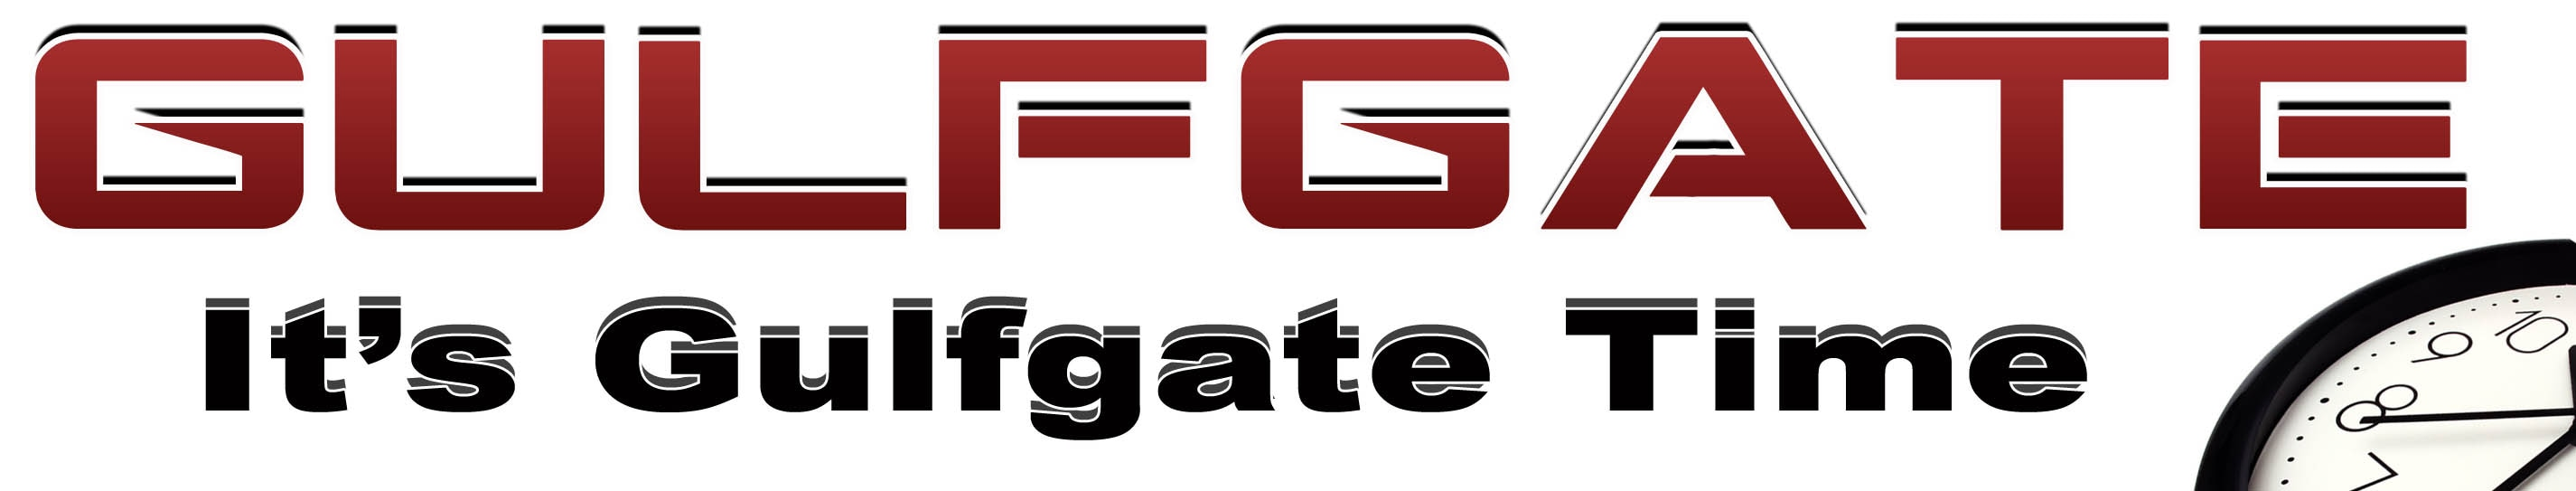 Gulfgate Dodge Houston Texas >> Houston, Texas New Dodge, Jeep, Chrysler, Ram & Used Car Dealer | About Gulfgate Dodge Chrysler ...